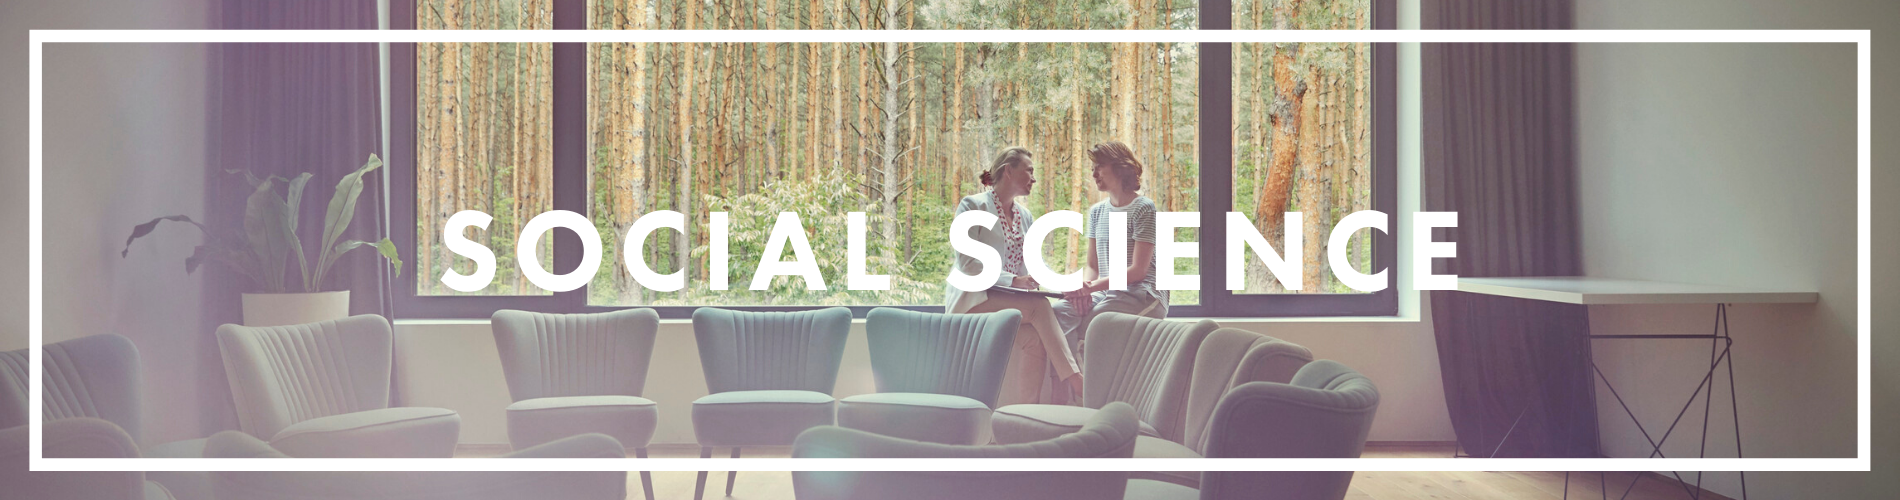 social science web banner